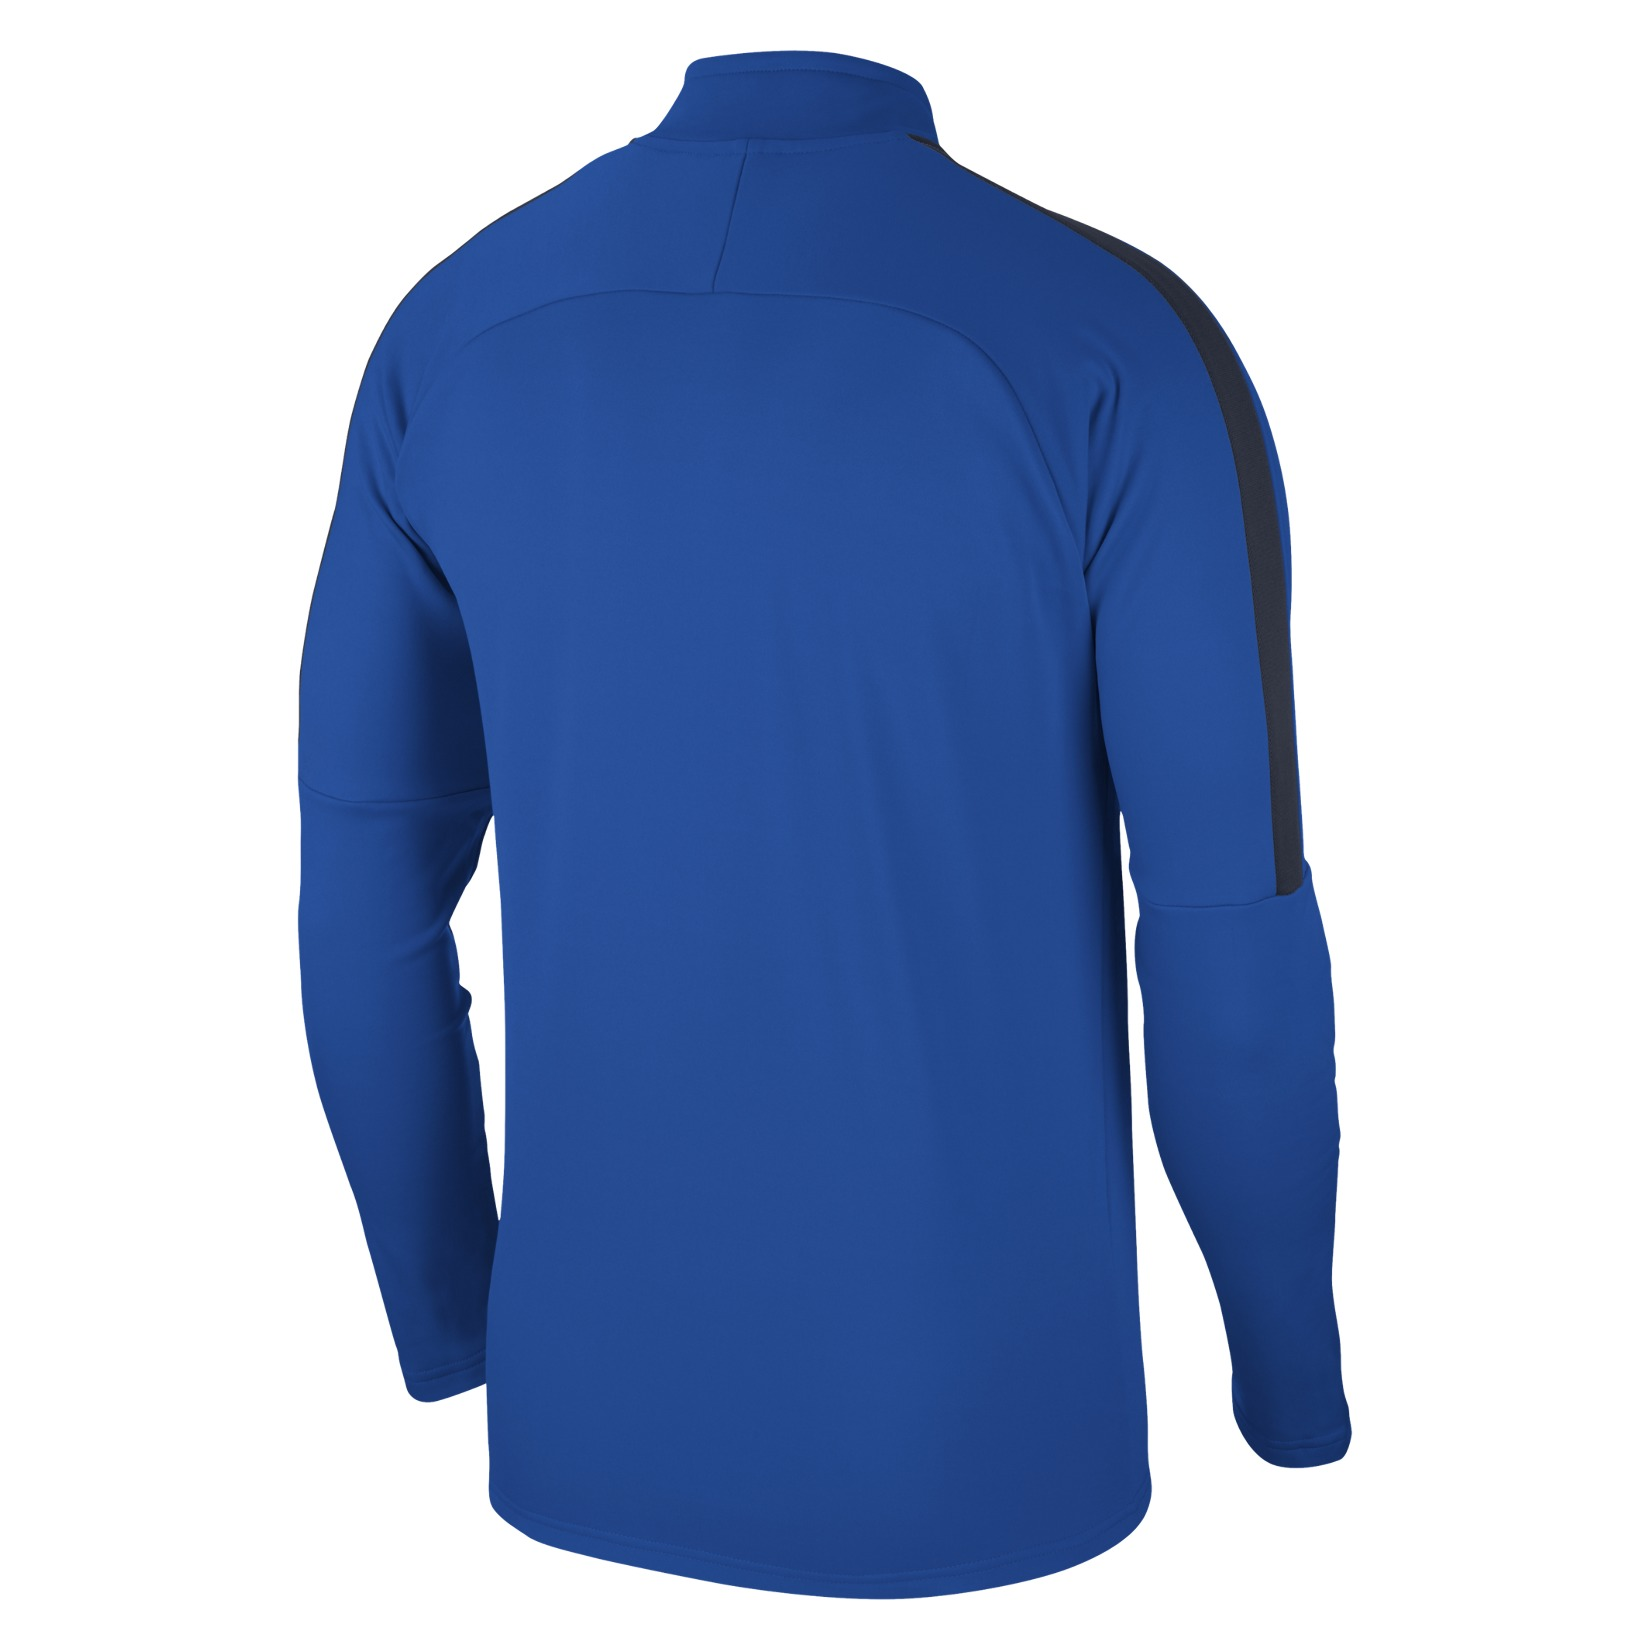 Nike Academy 18 Midlayer Top (m) Royal Blue-Obsidian-White